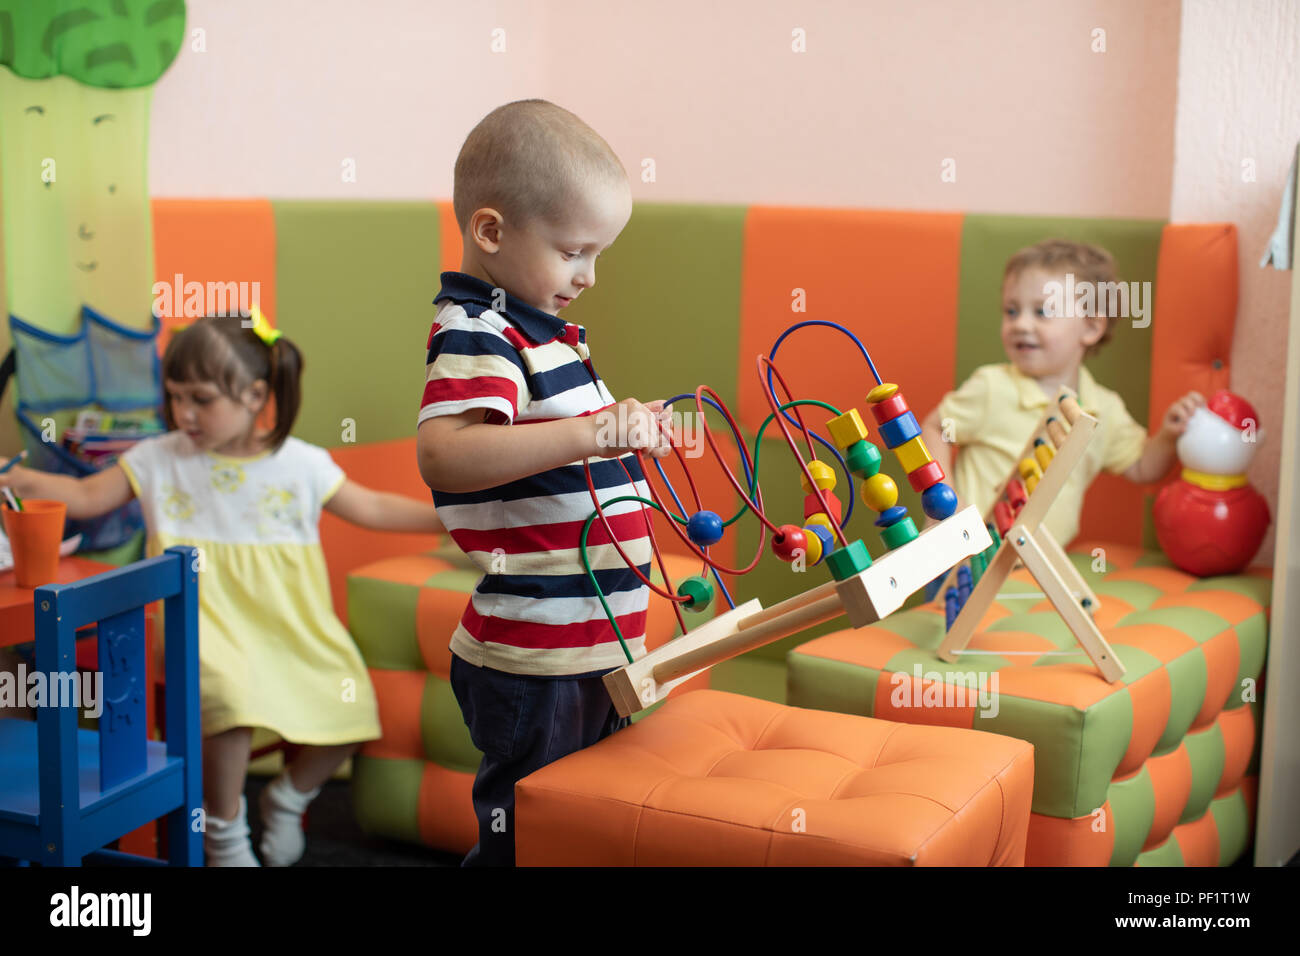 Group of children playing in kindergarten or daycare centre - Stock Image